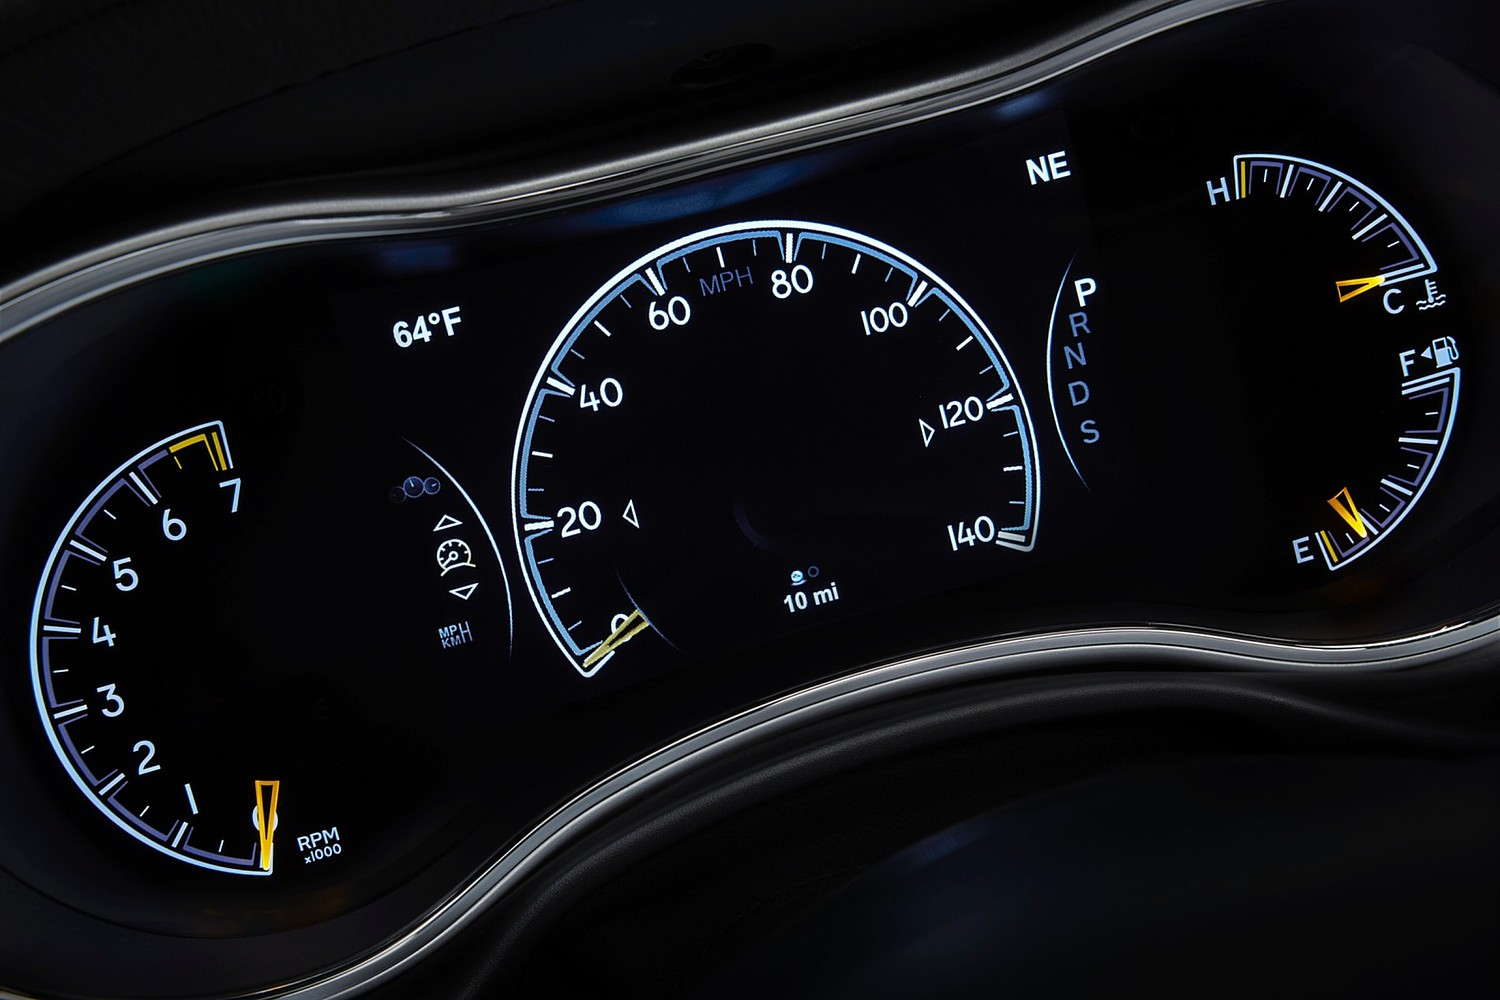 Jeep Grand Cherokee Summit 4dr SUV Gauge Cluster (2015 model year shown)